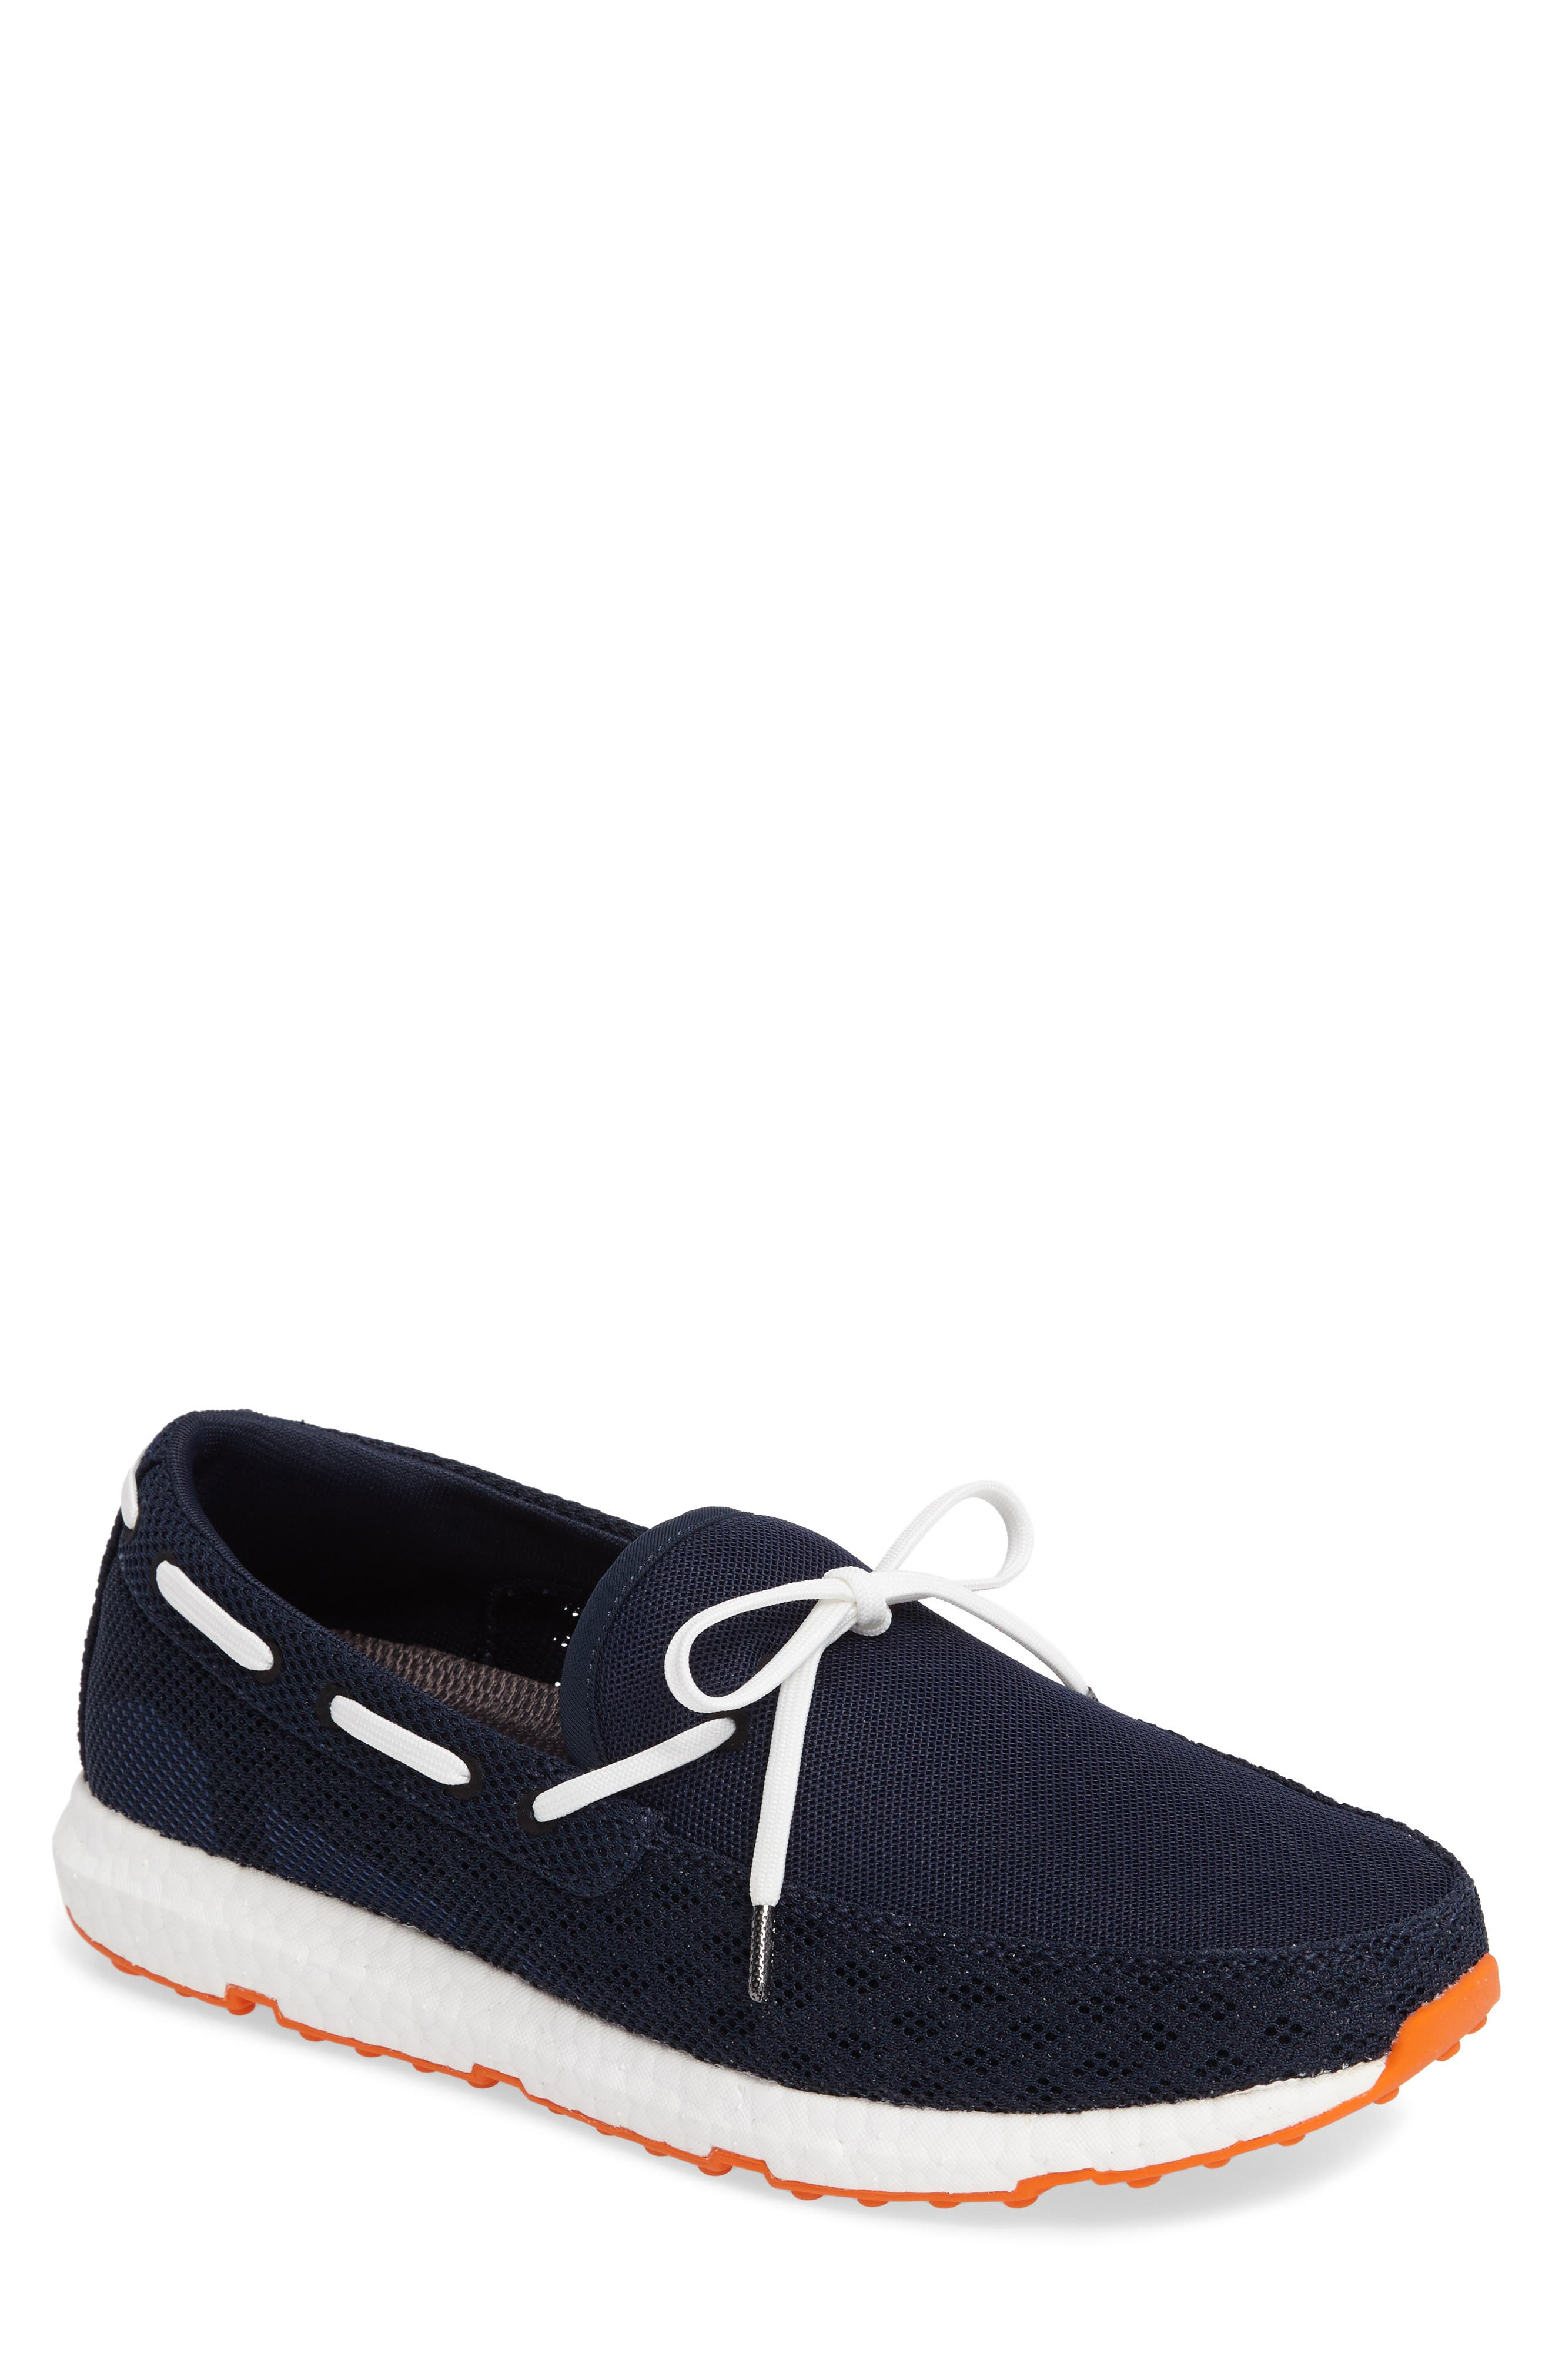 Breeze Loafer,                             Main thumbnail 1, color,                             Navy/ Orange Fabric